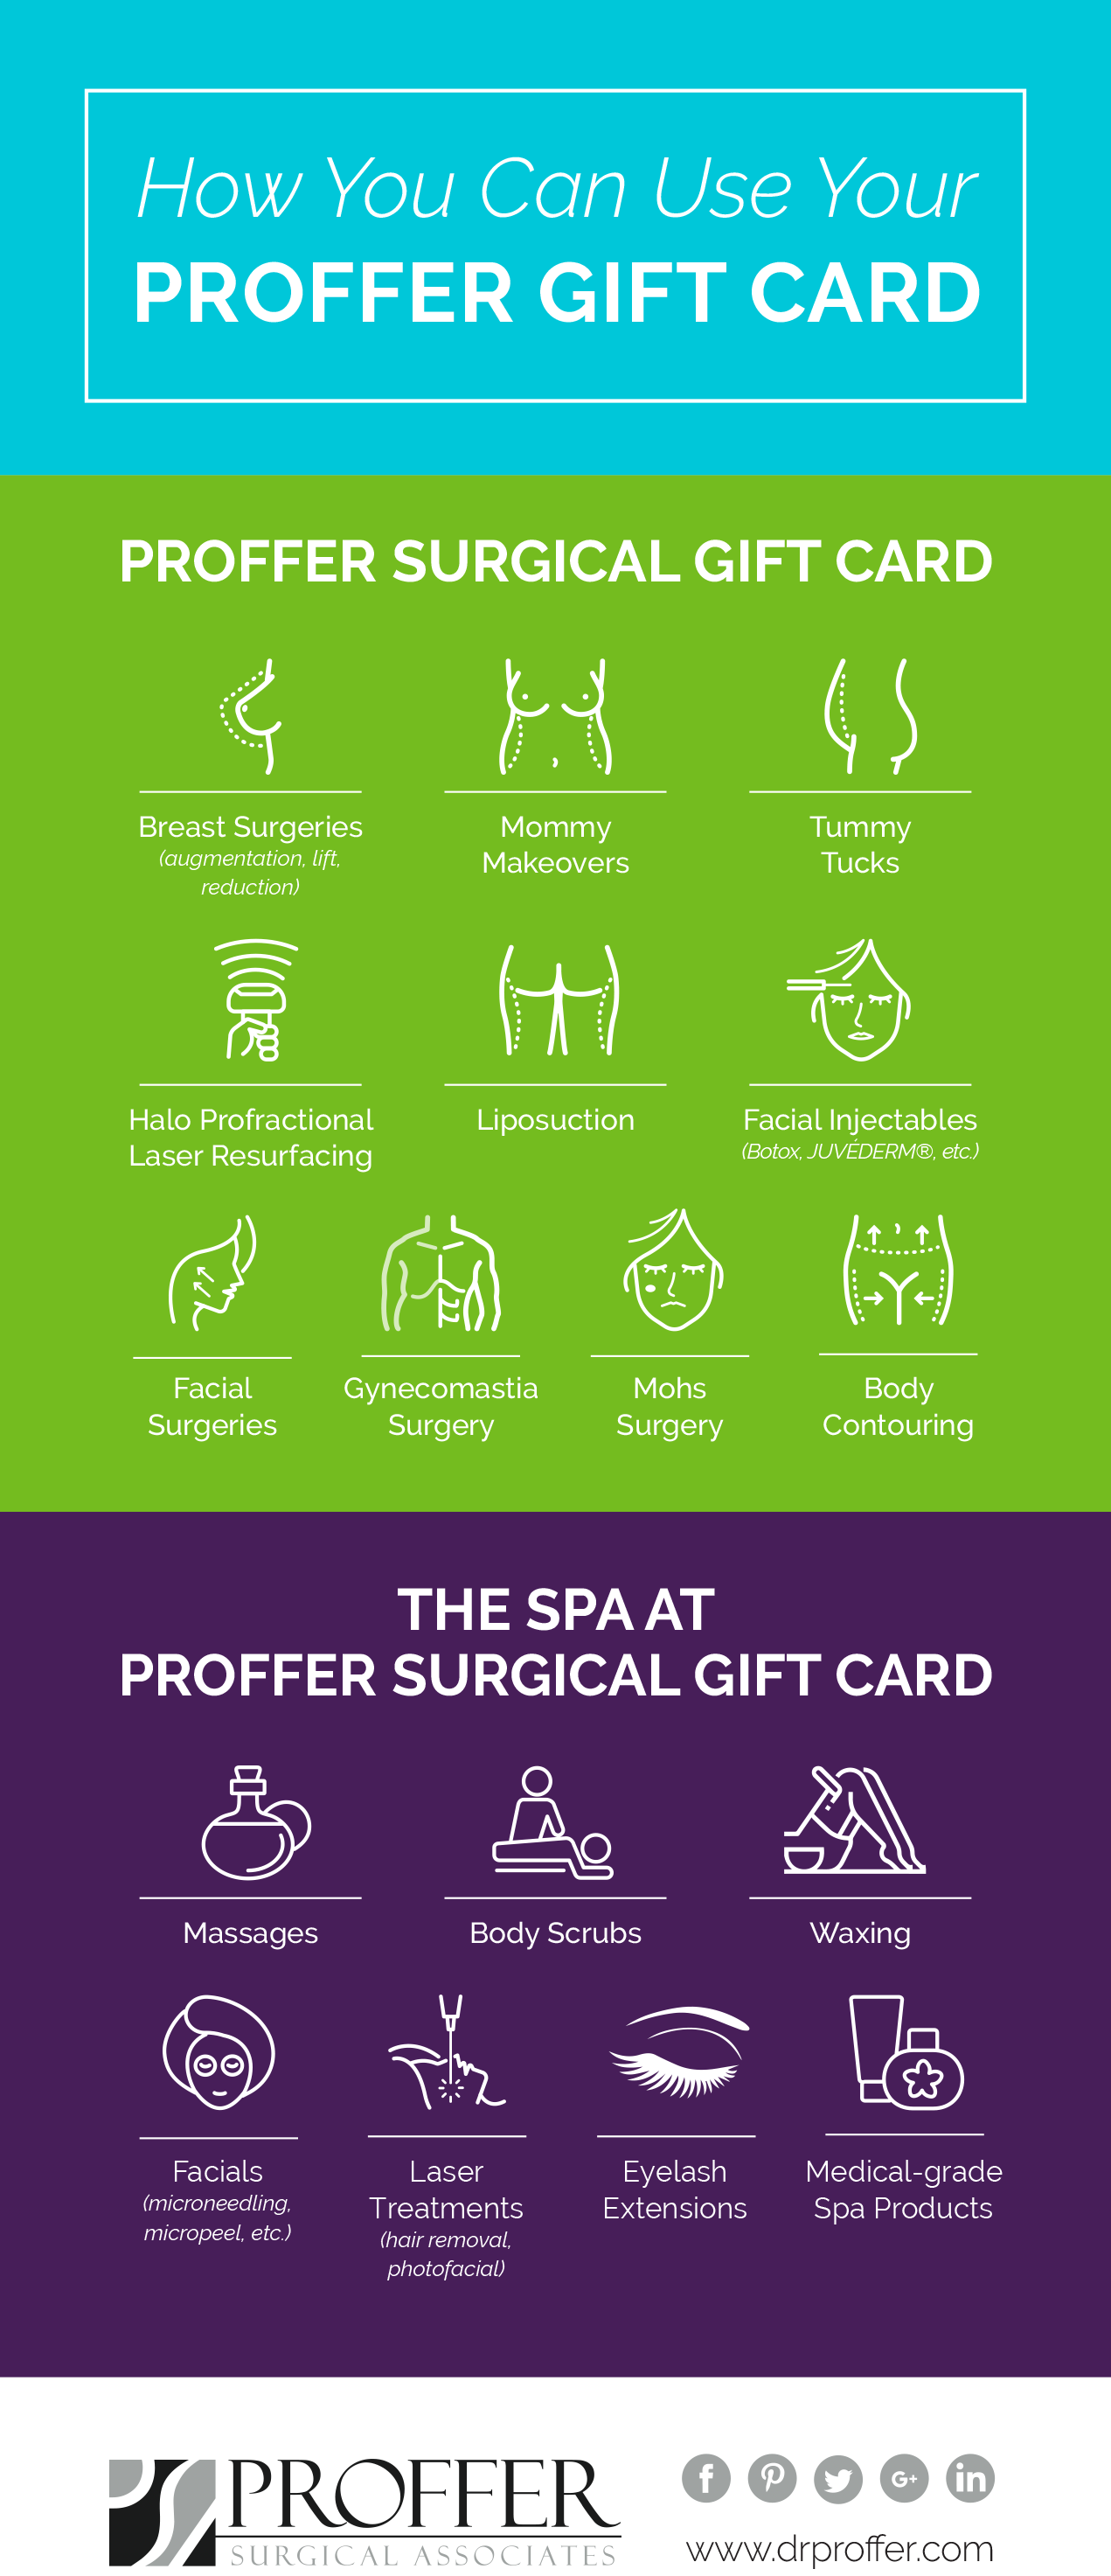 Proffer Gift Cards Vs. Spa Gift Cards Infographic2.png